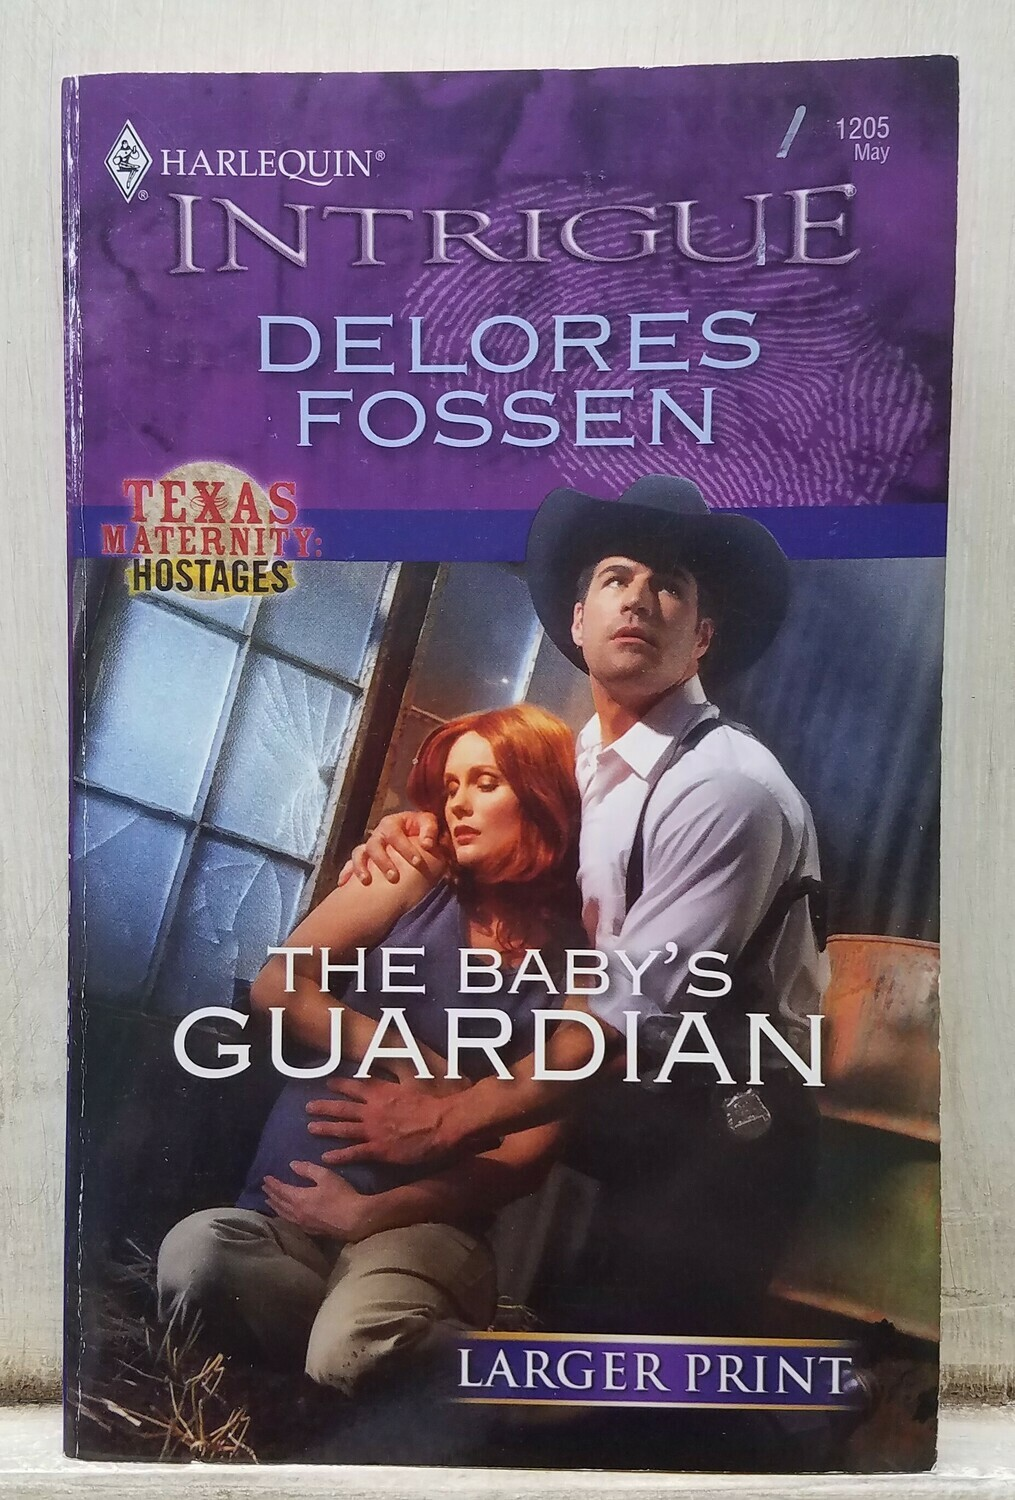 The Baby's Guardian by Delores Fossen